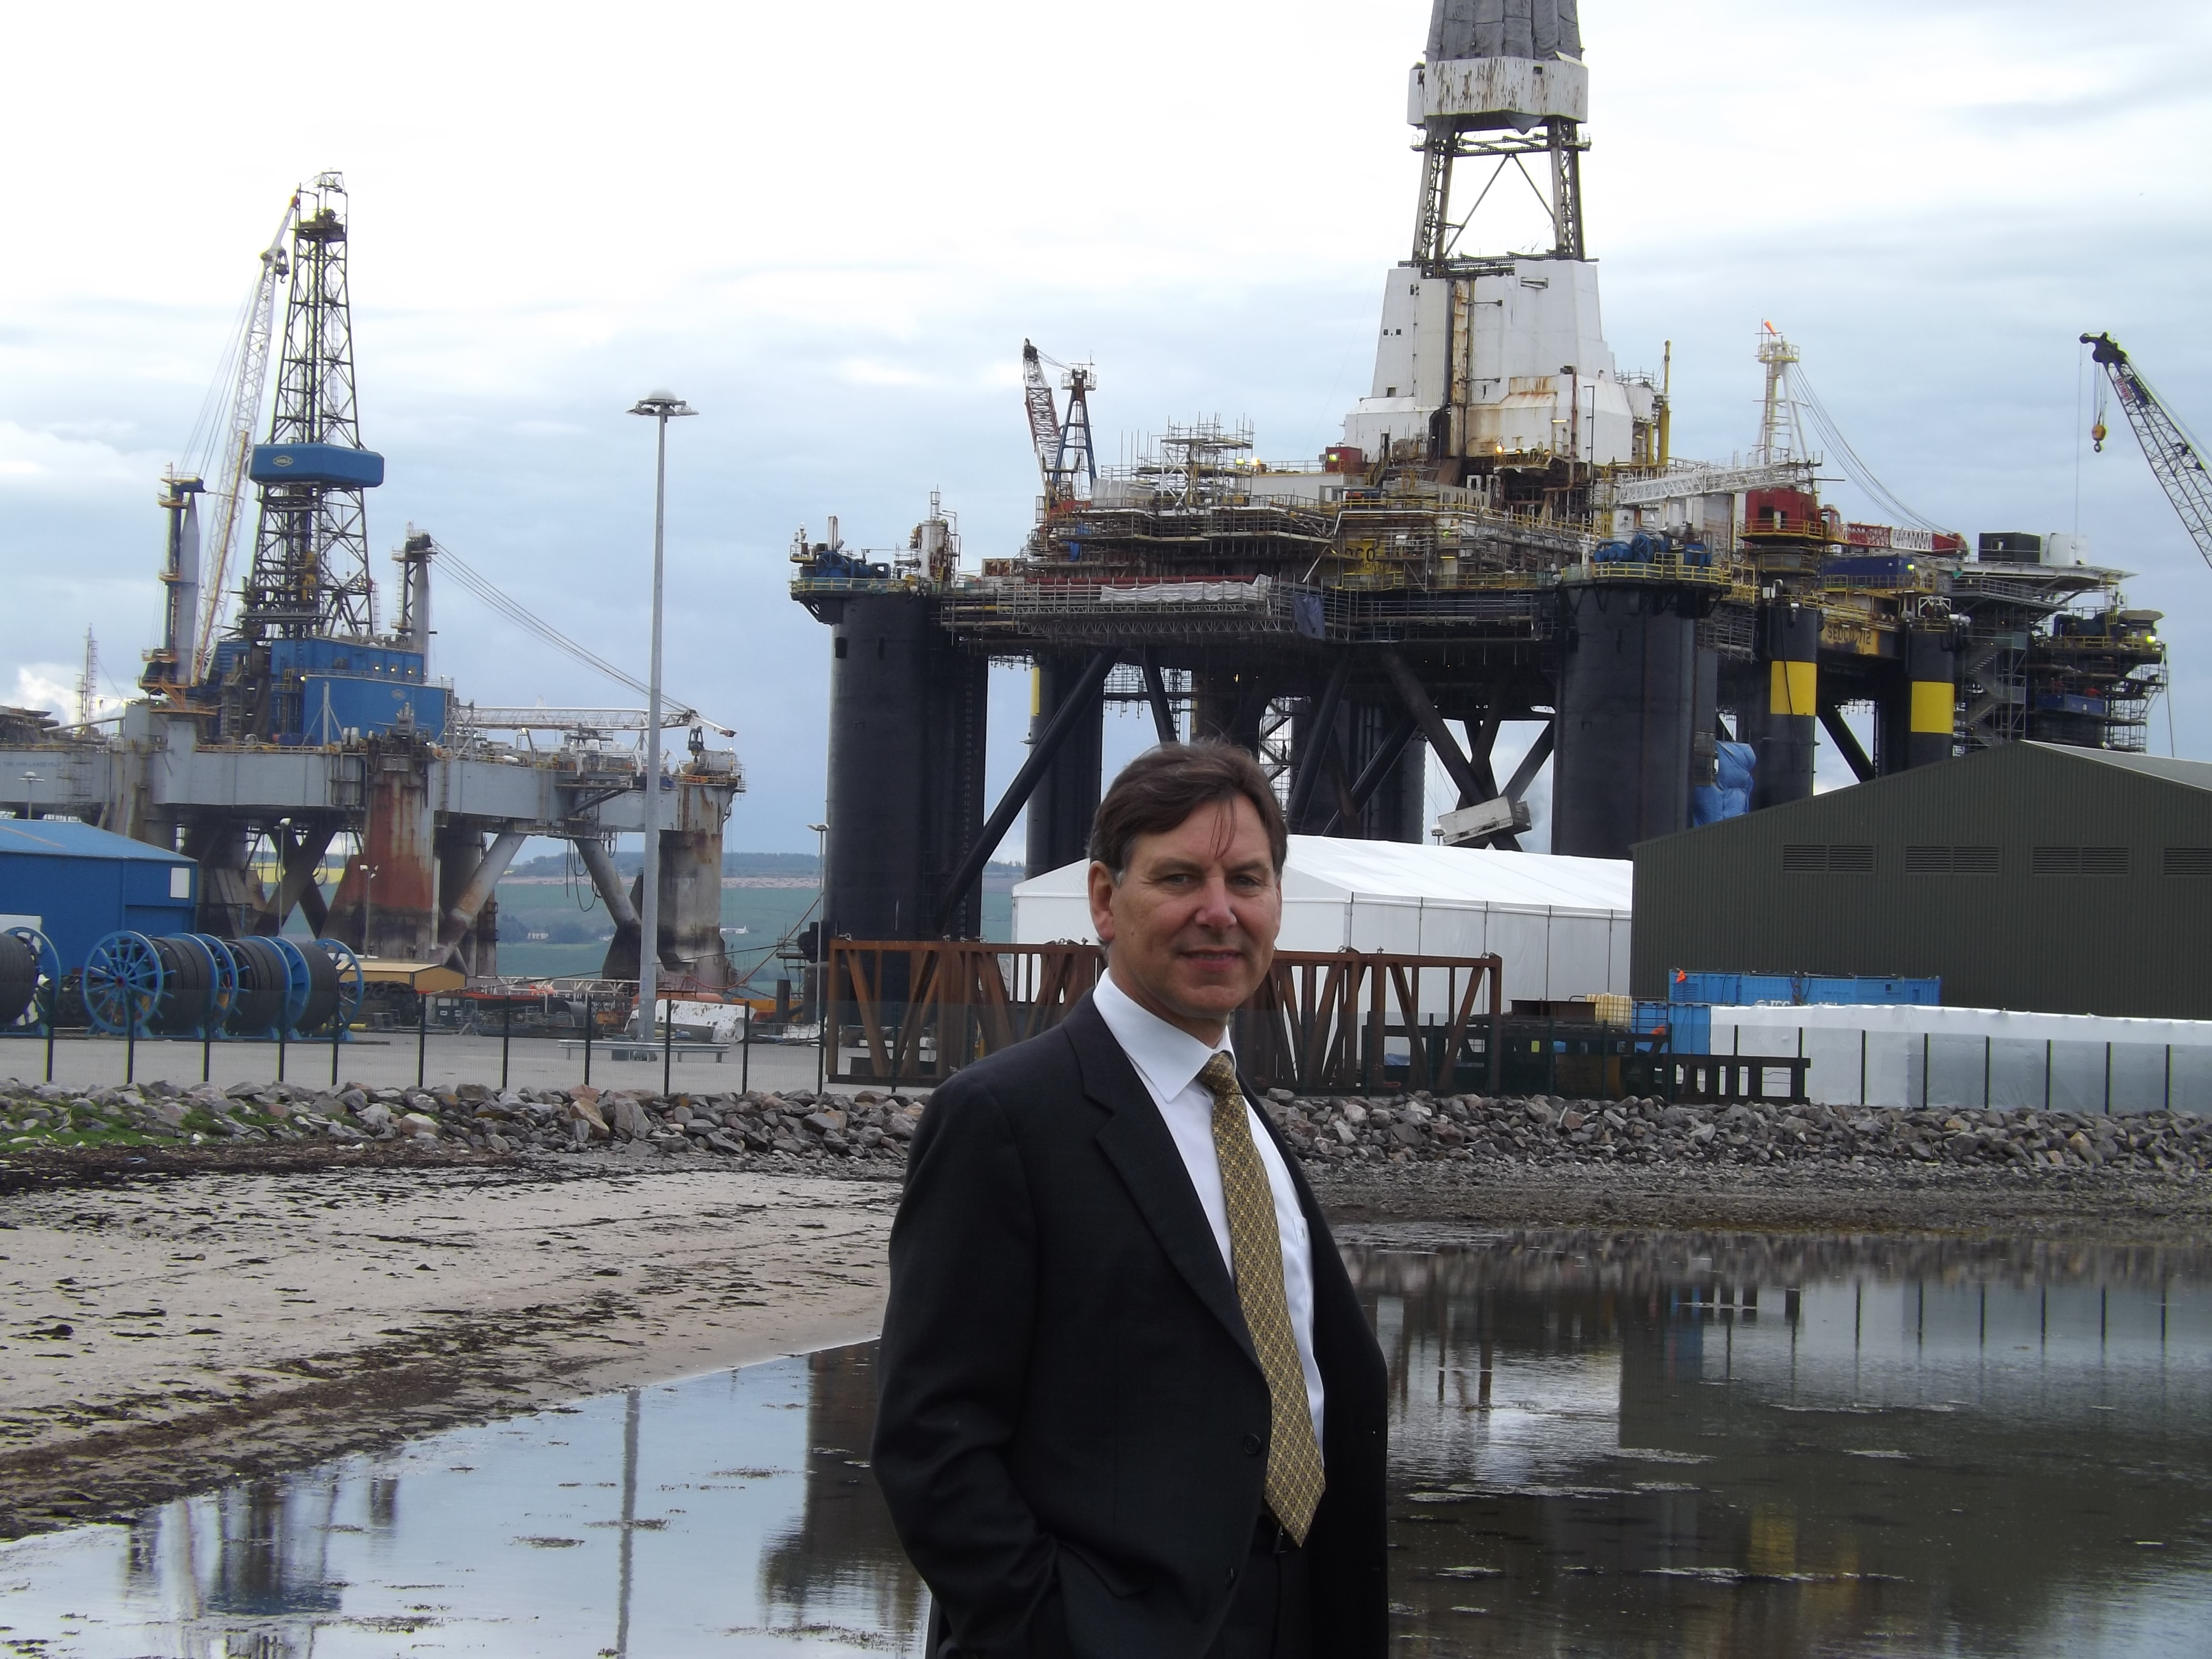 Port of Cromarty Firth (PCF) chief executive, Bob Buskie